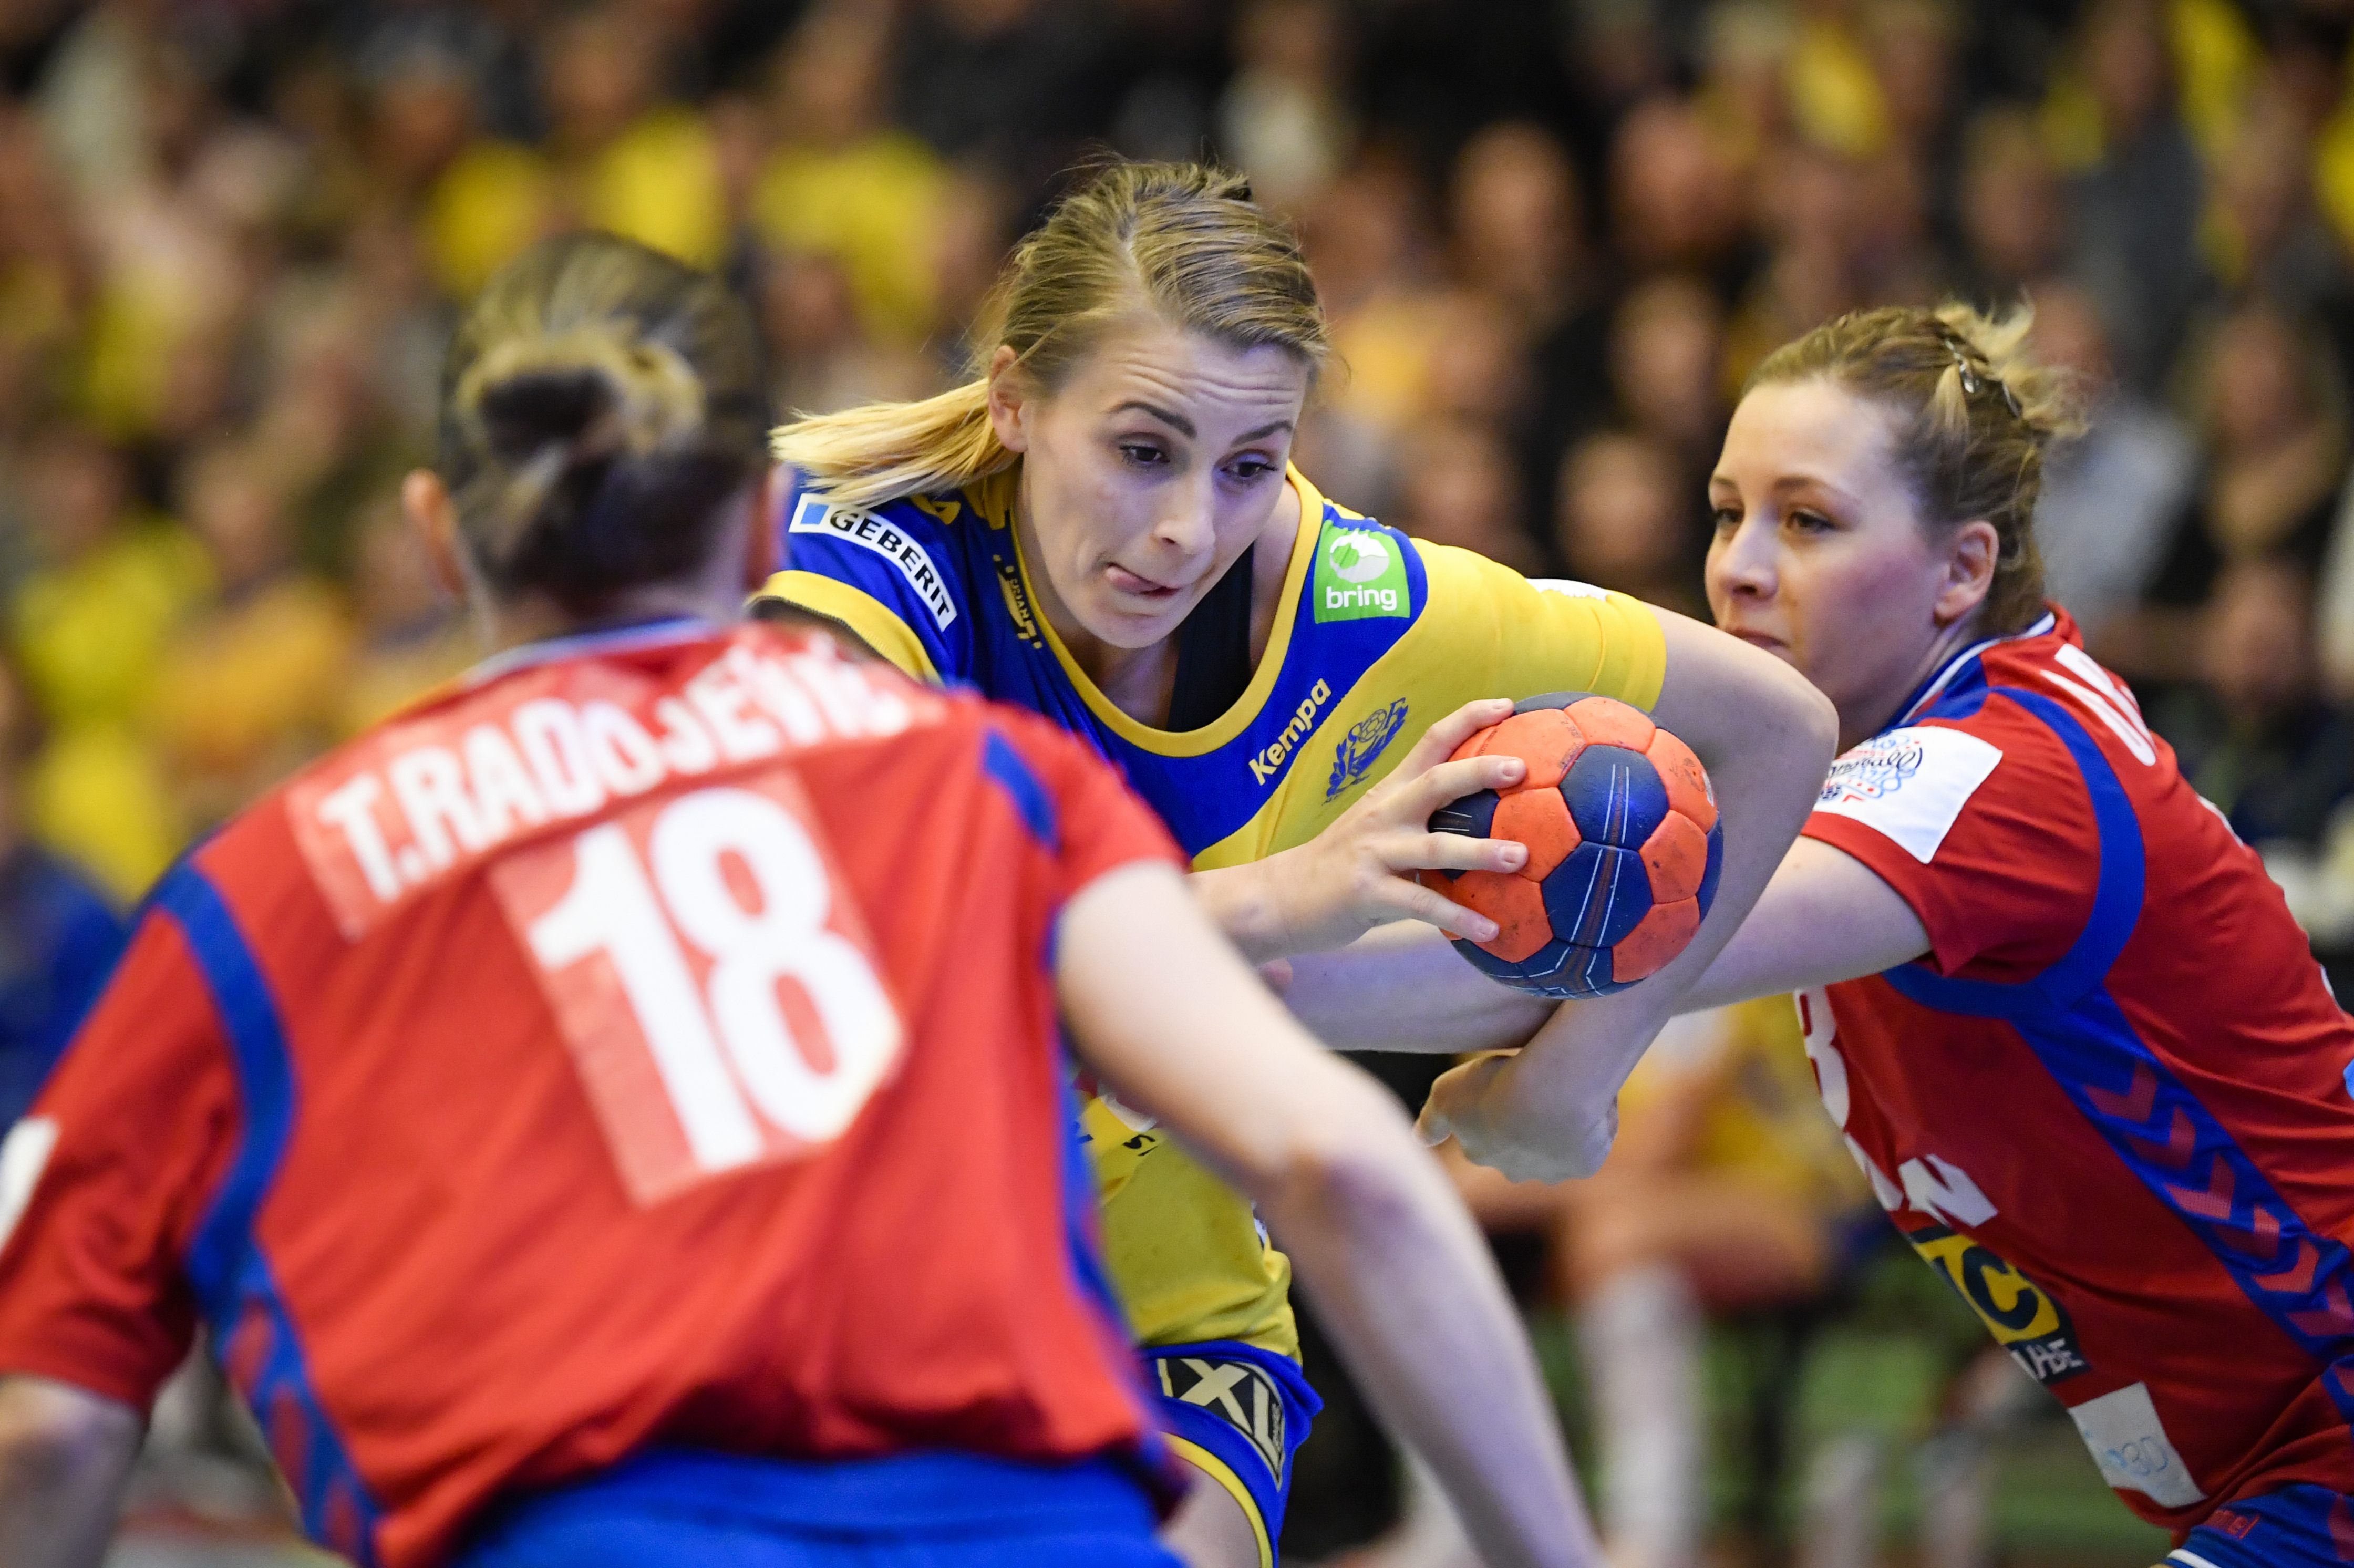 Nent Group Acquires Rights To Ihf And Ehf Handball Competitions